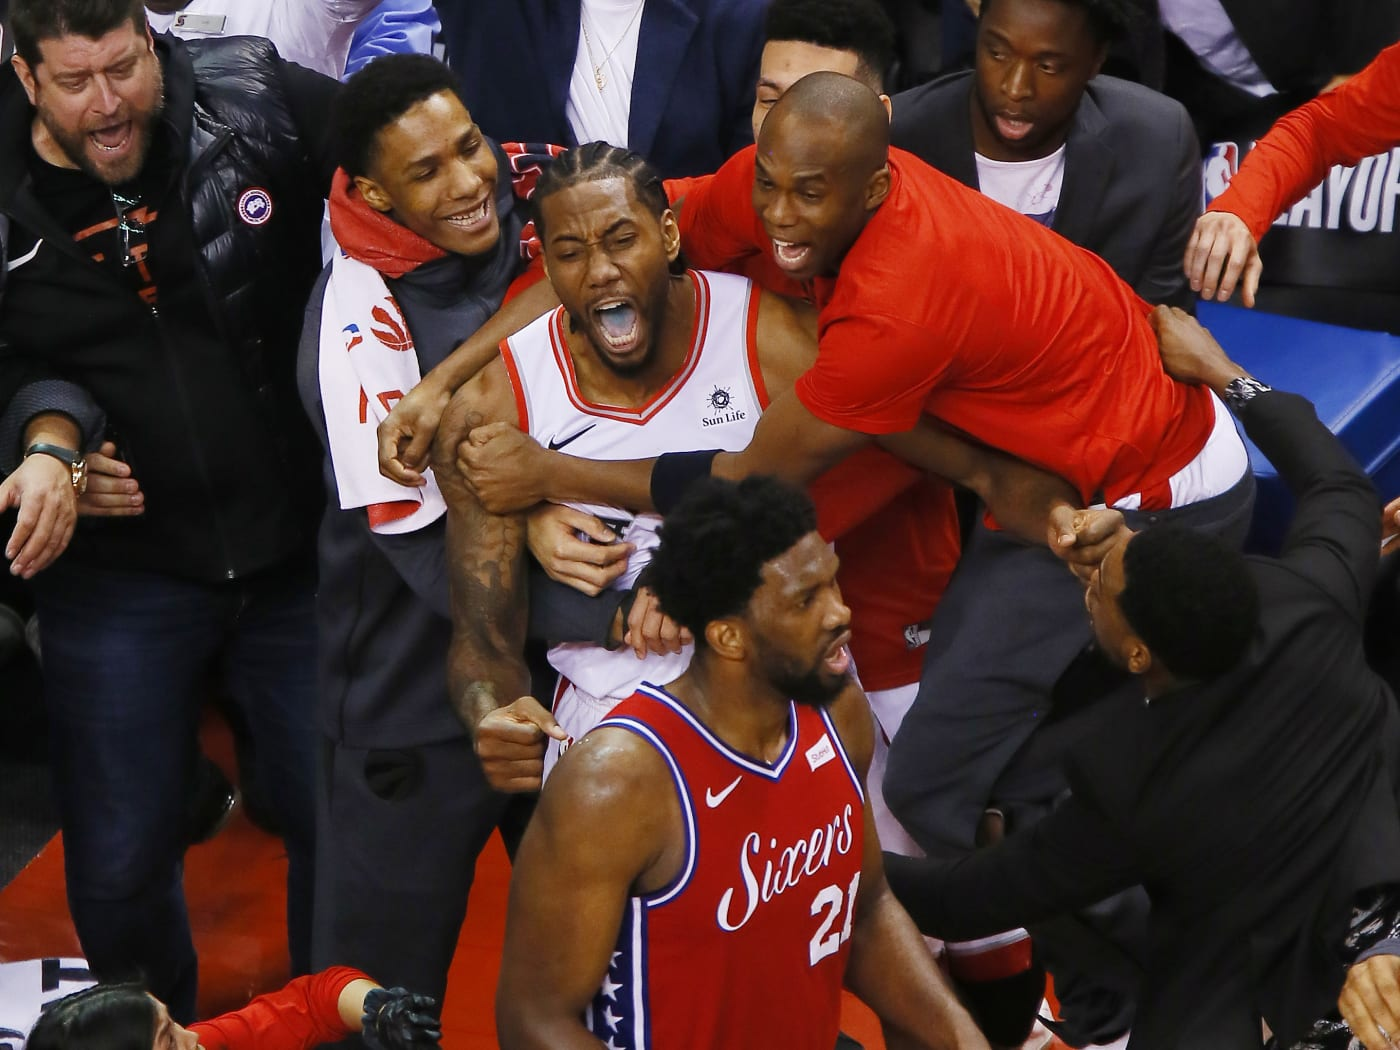 Kawhi Leonard Joel Emiiid Celebration 2019 Game 7 Playoffs